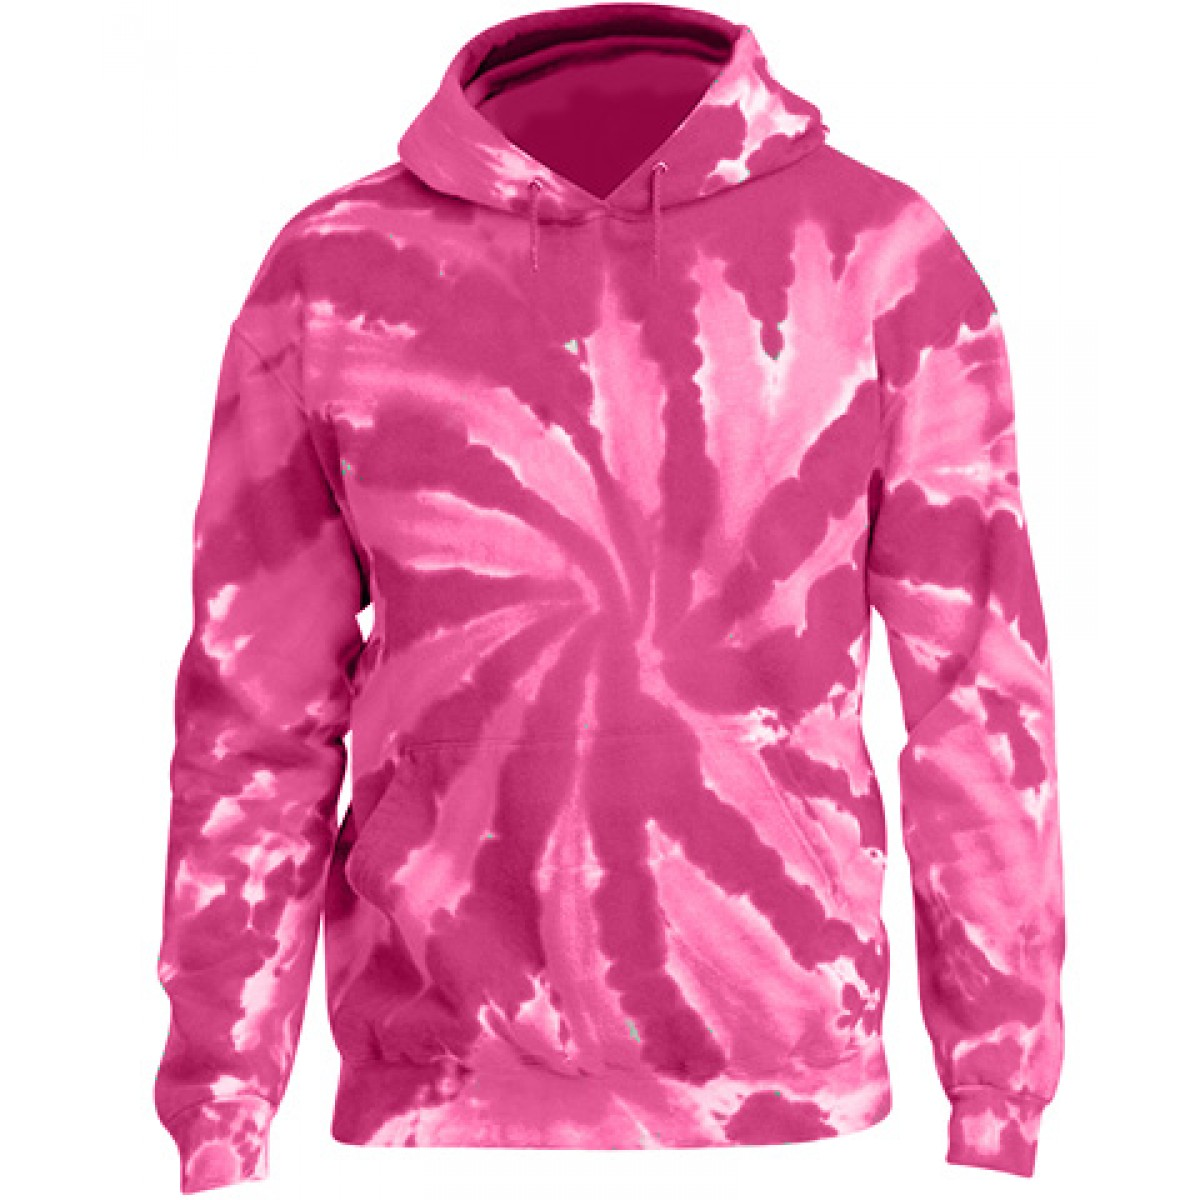 Tie-Dye Pullover Hooded Sweatshirt-Pink-2XL